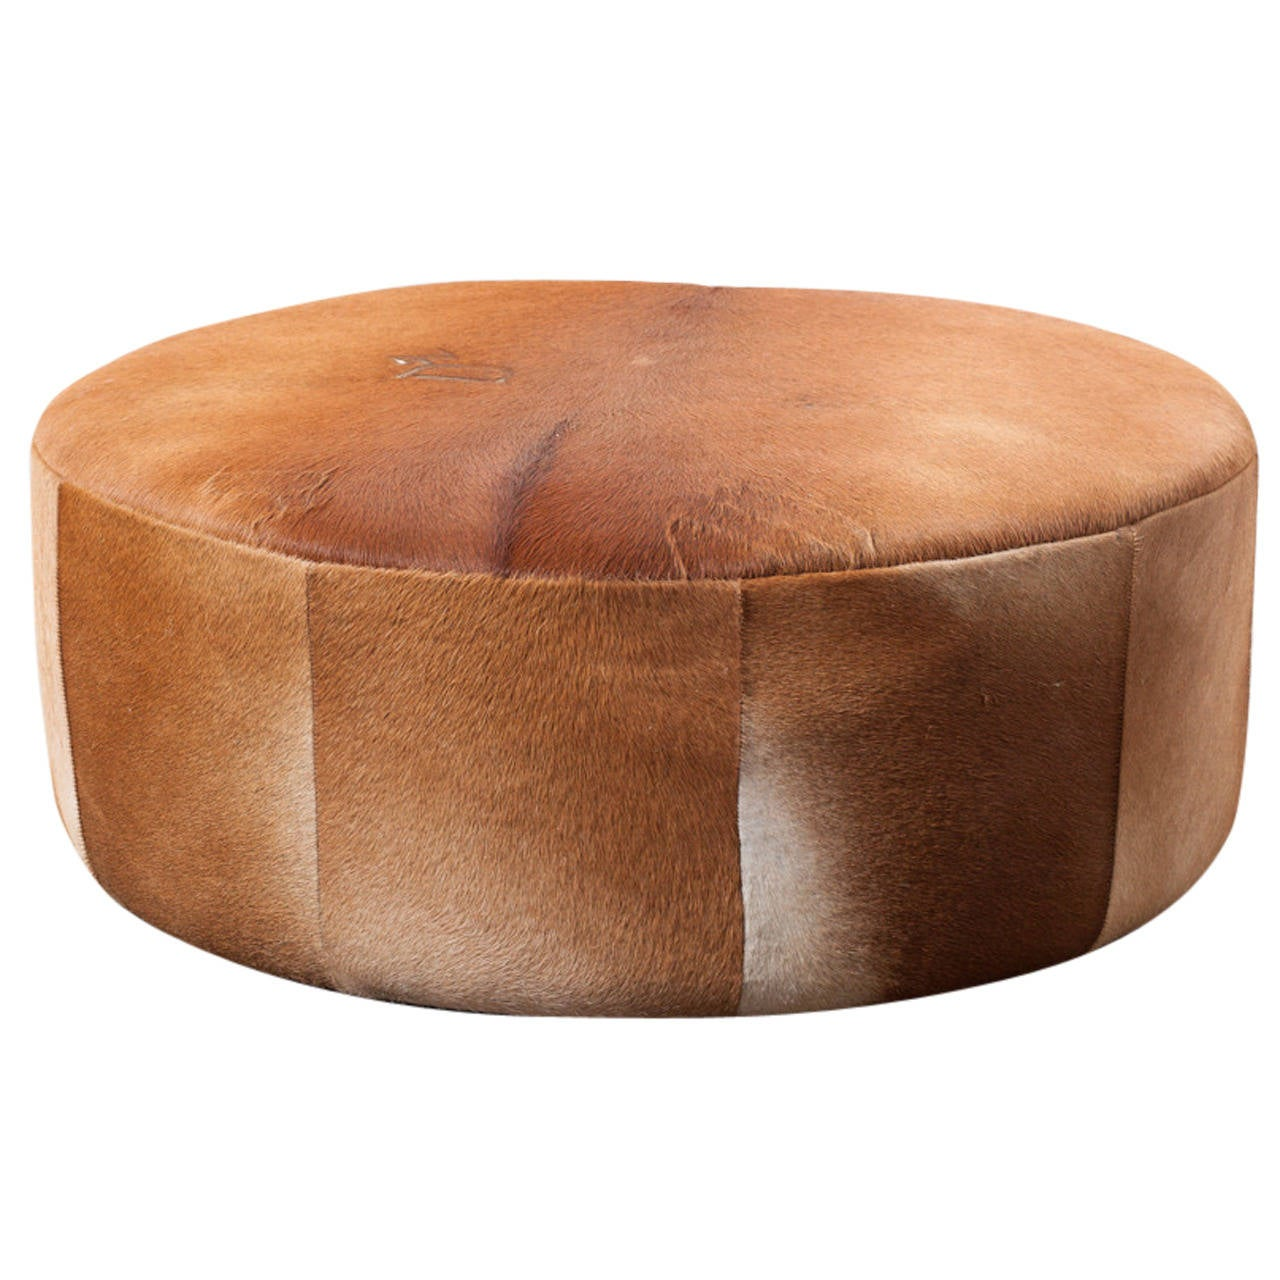 Vintage Inspired Cowhide Ottoman Or Coffee Table At 1stdibs